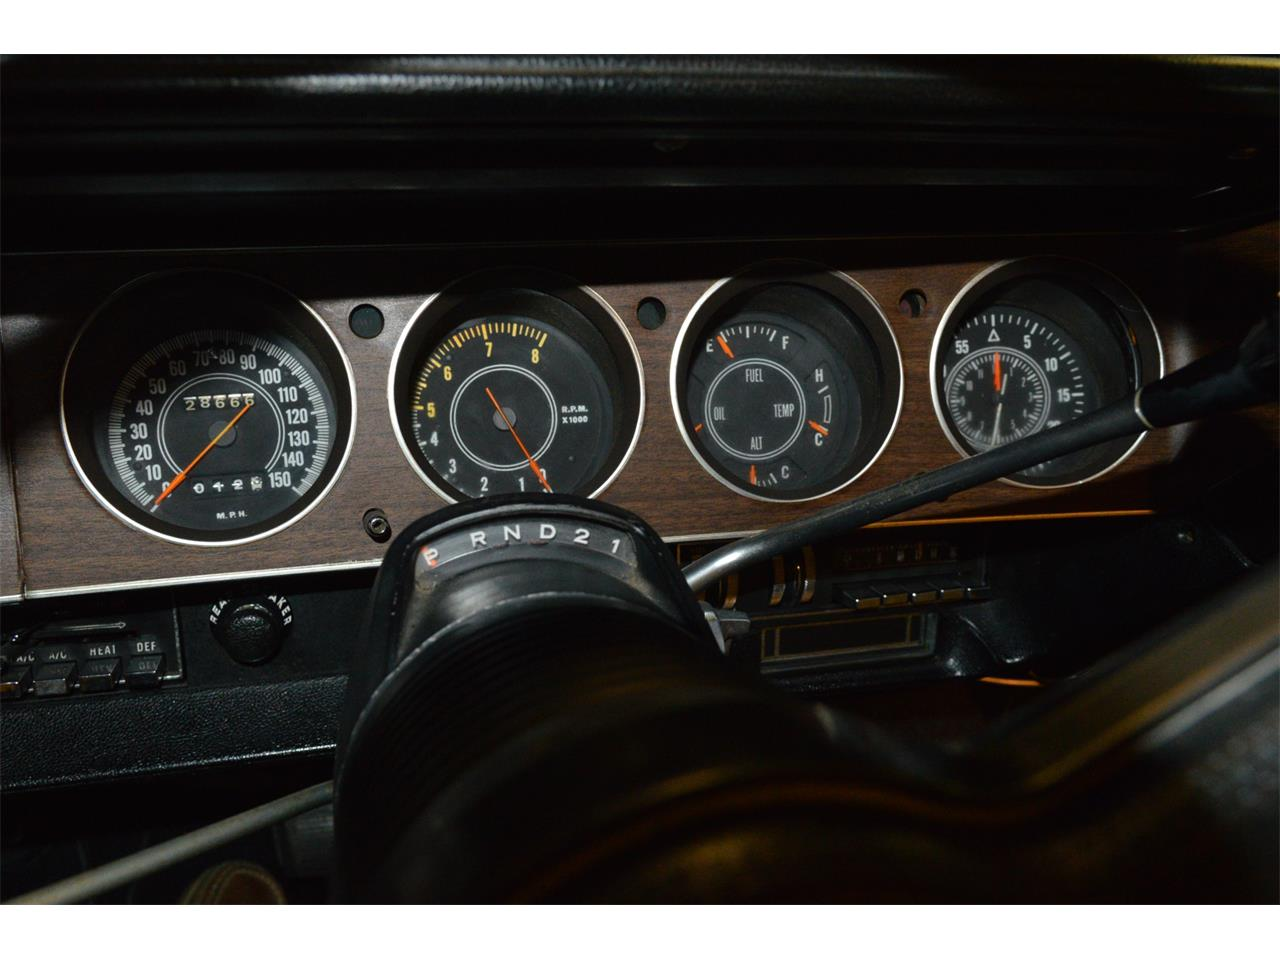 Large Picture of 1970 Cuda located in Bristol Pennsylvania Offered by L.R.A. Enterprises Auto Museum & Sales - MD67